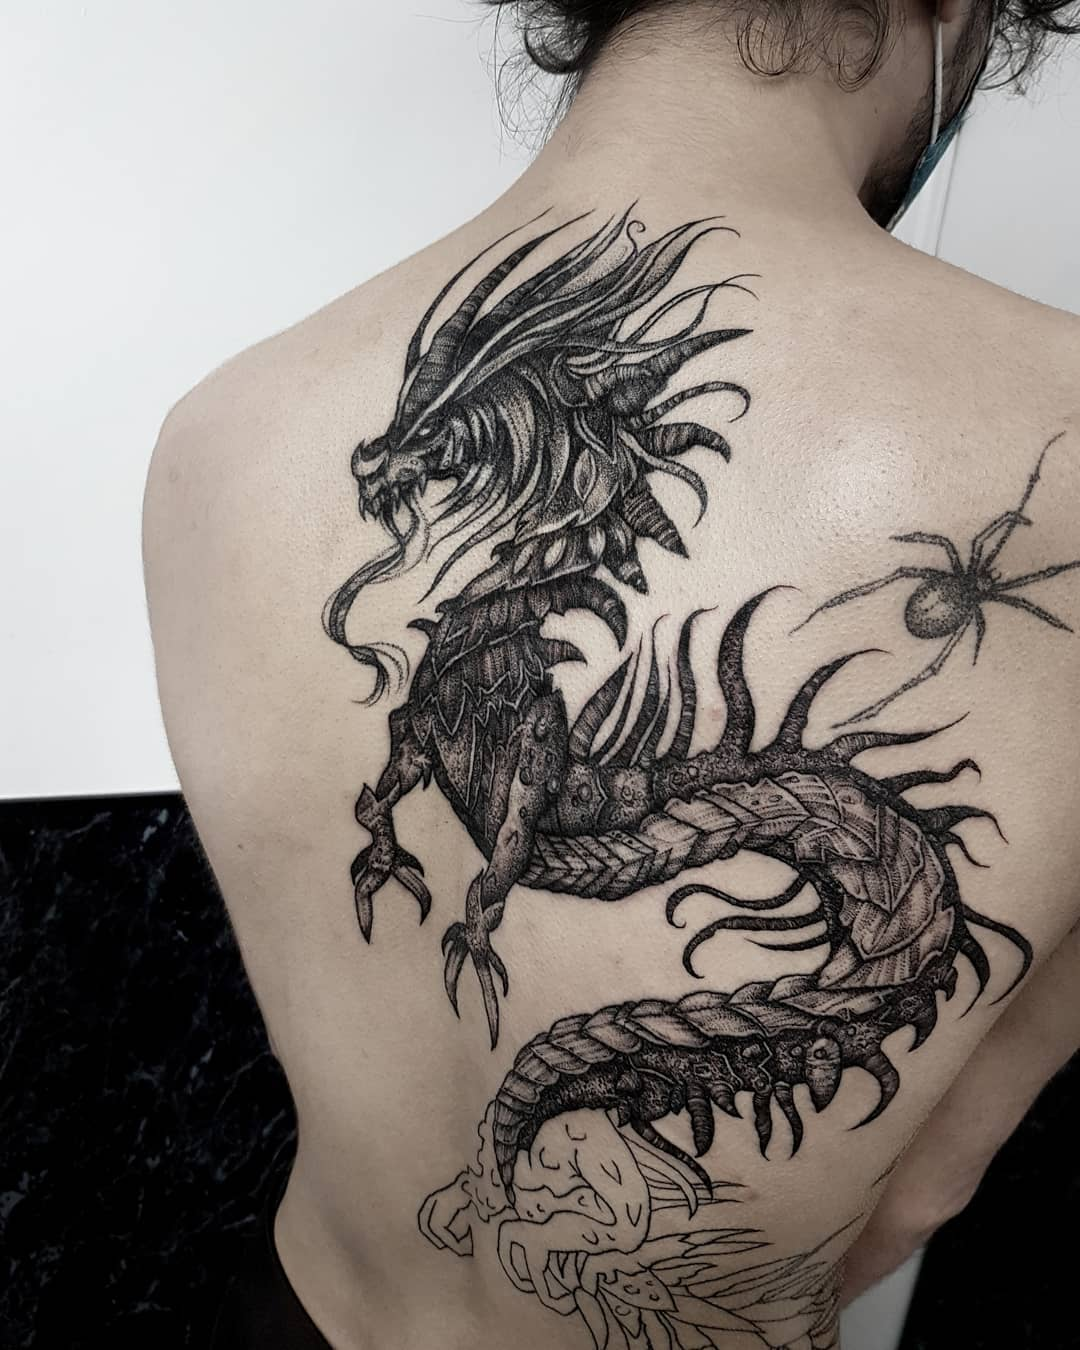 Dragons  wip with the lovely John,  the tail wraps around his stomach which will be the next session  get in touch with your dark ideas (more dragons!) at goatskullshirley@gmail.com . . . . . . . occultarcana artesobscurae btattooing blackwork blackworkers blxckink darkartists darkart darkarts thedarkestwork onlyblackart onlythedarkest blacktattoos blacktattoo metalhead blackmetal occult wiccac witchythings dragon mythology macabre darkartistries edinburgh goth gothic studioxiii @artesobscurae @occultarcana @thedarkestwork @onlythedarkest @black_tattoo_culture @darkartists @wiccac